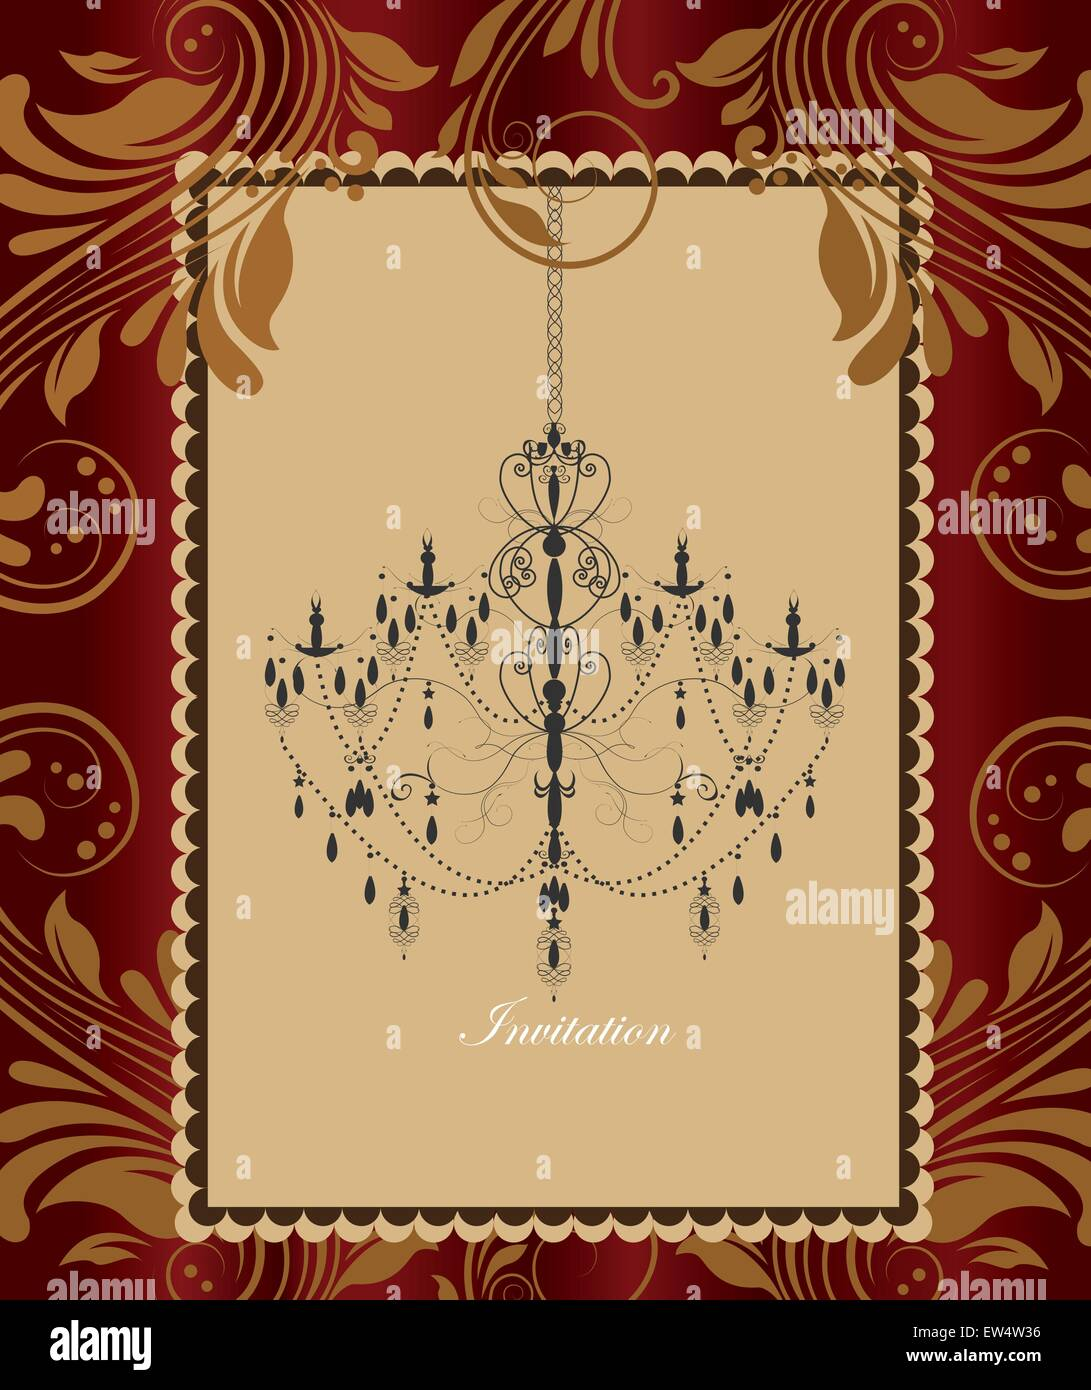 Vintage invitation card with ornate elegant retro abstract floral vintage invitation card with ornate elegant retro abstract floral design chandelier in frame border on shiny gold and red flowers and leaves background stopboris Choice Image